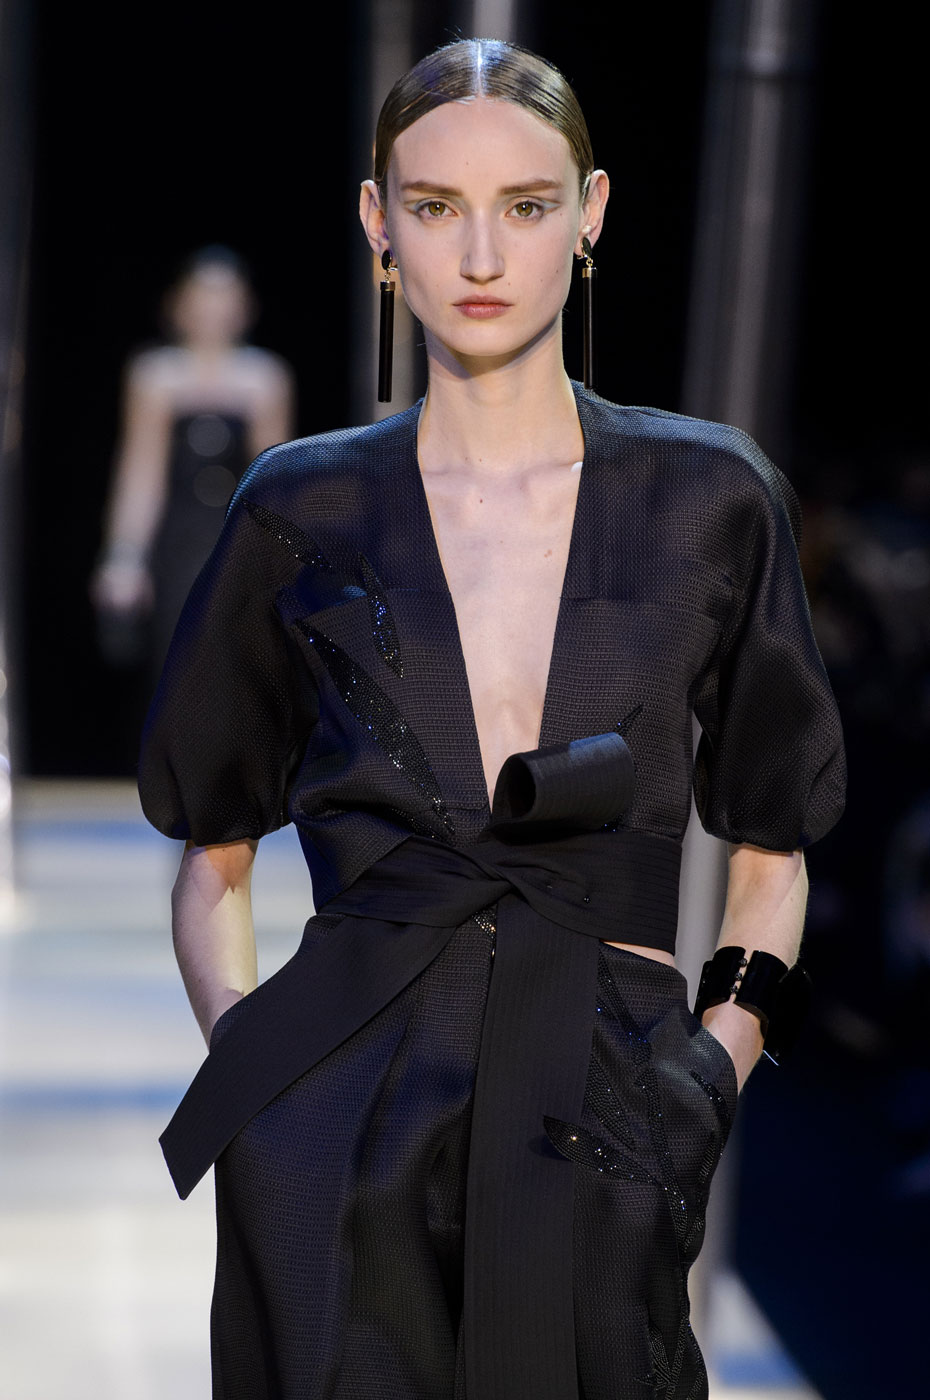 Giorgio-armani-Prive-fashion-runway-show-haute-couture-paris-spring-2015-the-impression-098